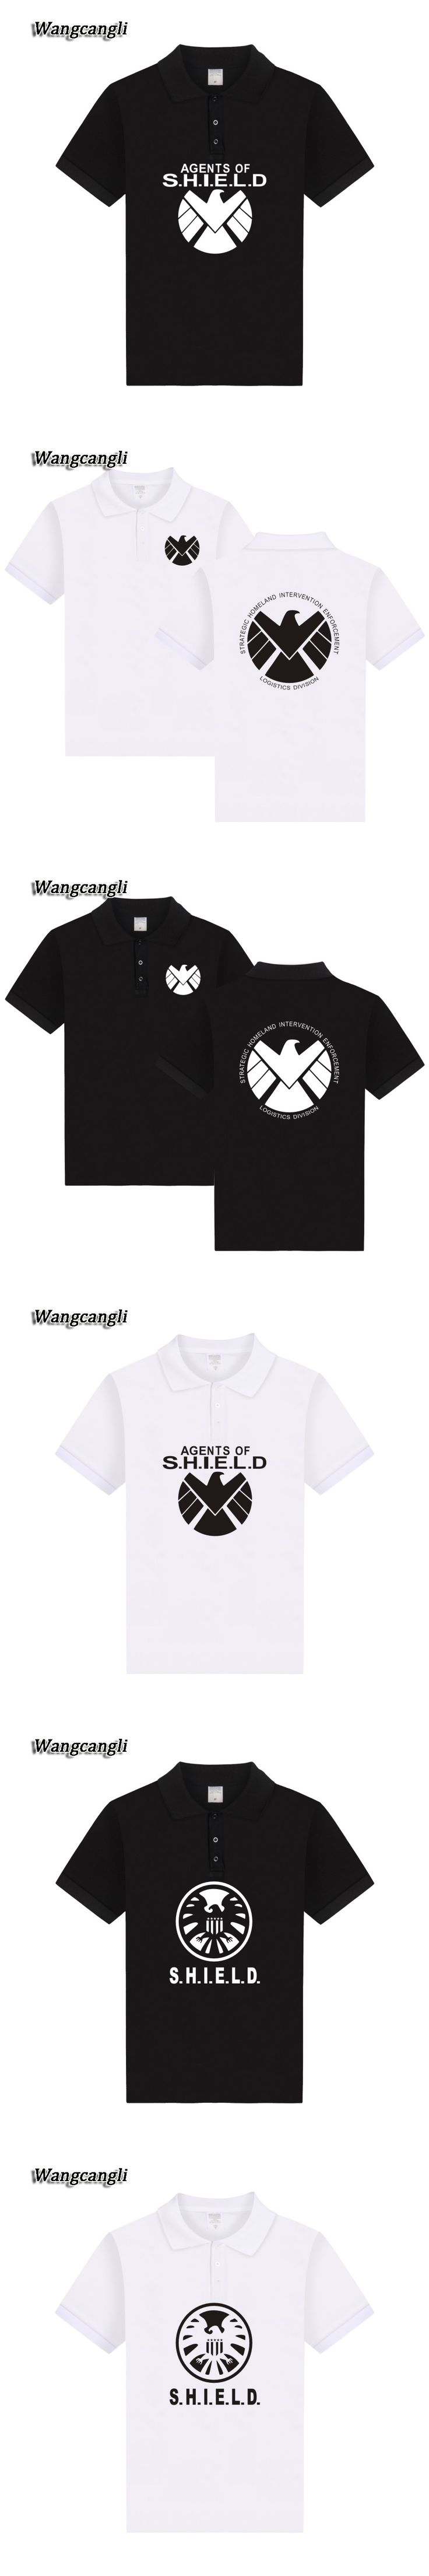 2017 Avengers Agents of S.H.I.E.L.D.  print  polo shirt Men Fashion Cotton Tee tops brand clothing Unisex polo shirt